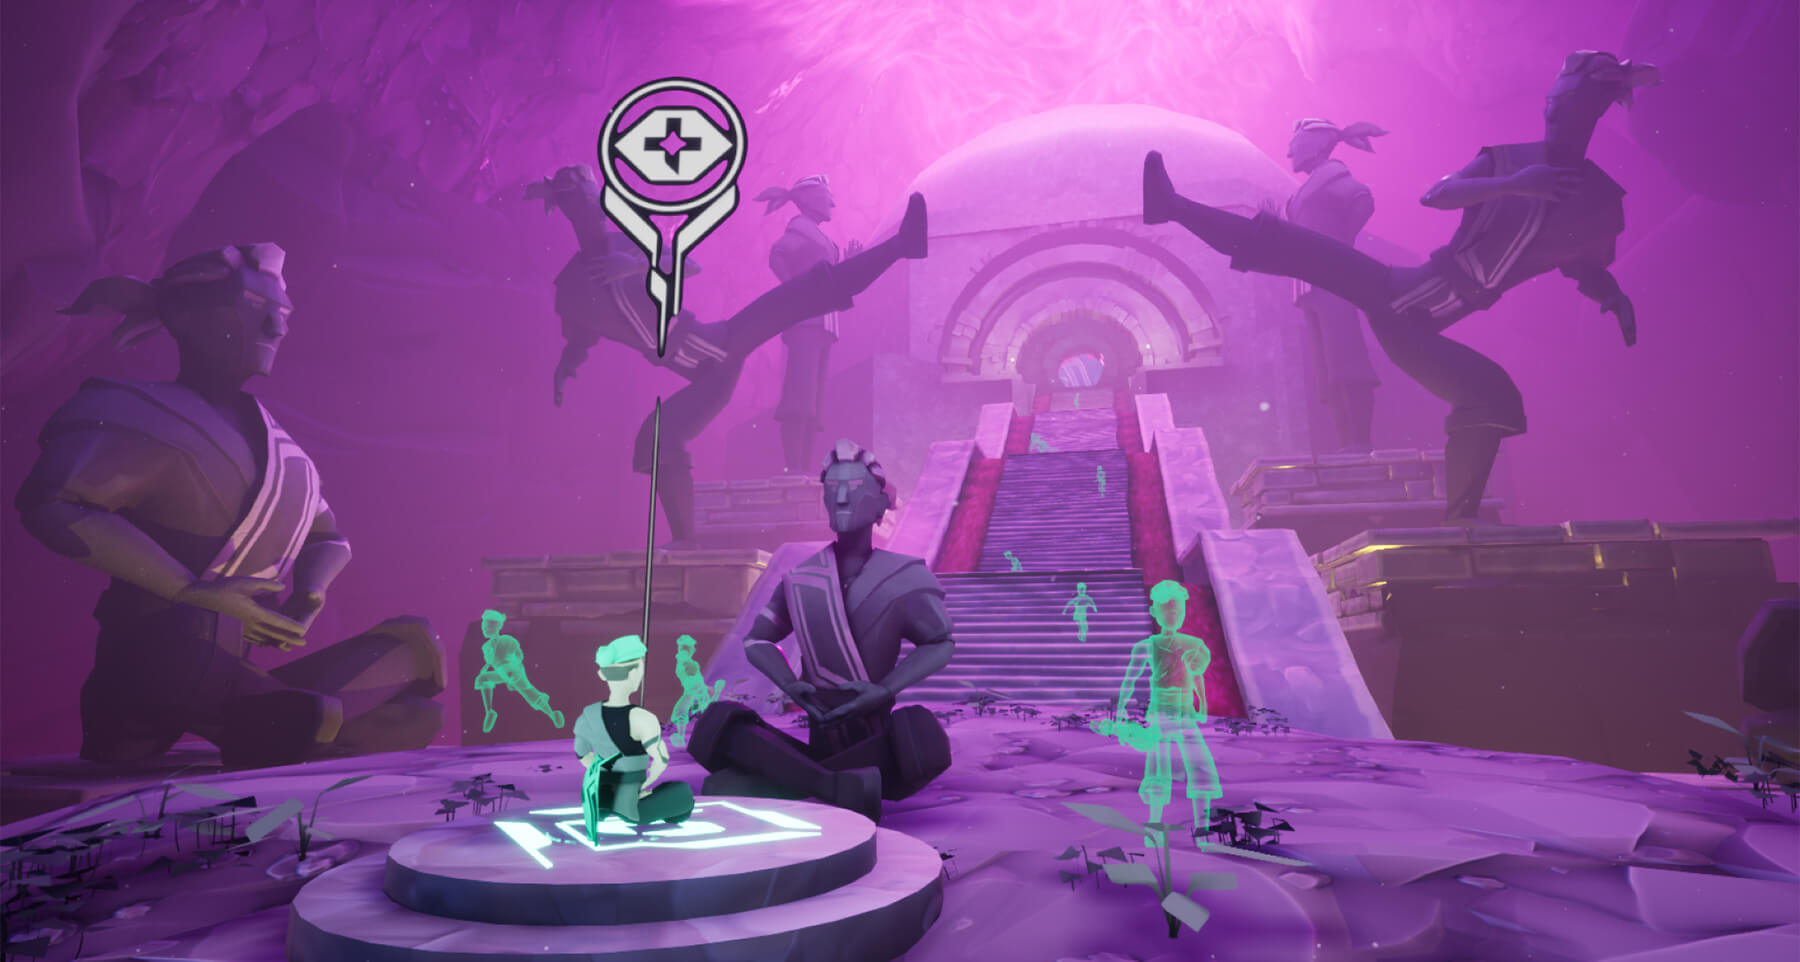 Game screenshot showing a monk meditating at the base of a stairway leading to a stone temple, surrounded by phantom figures